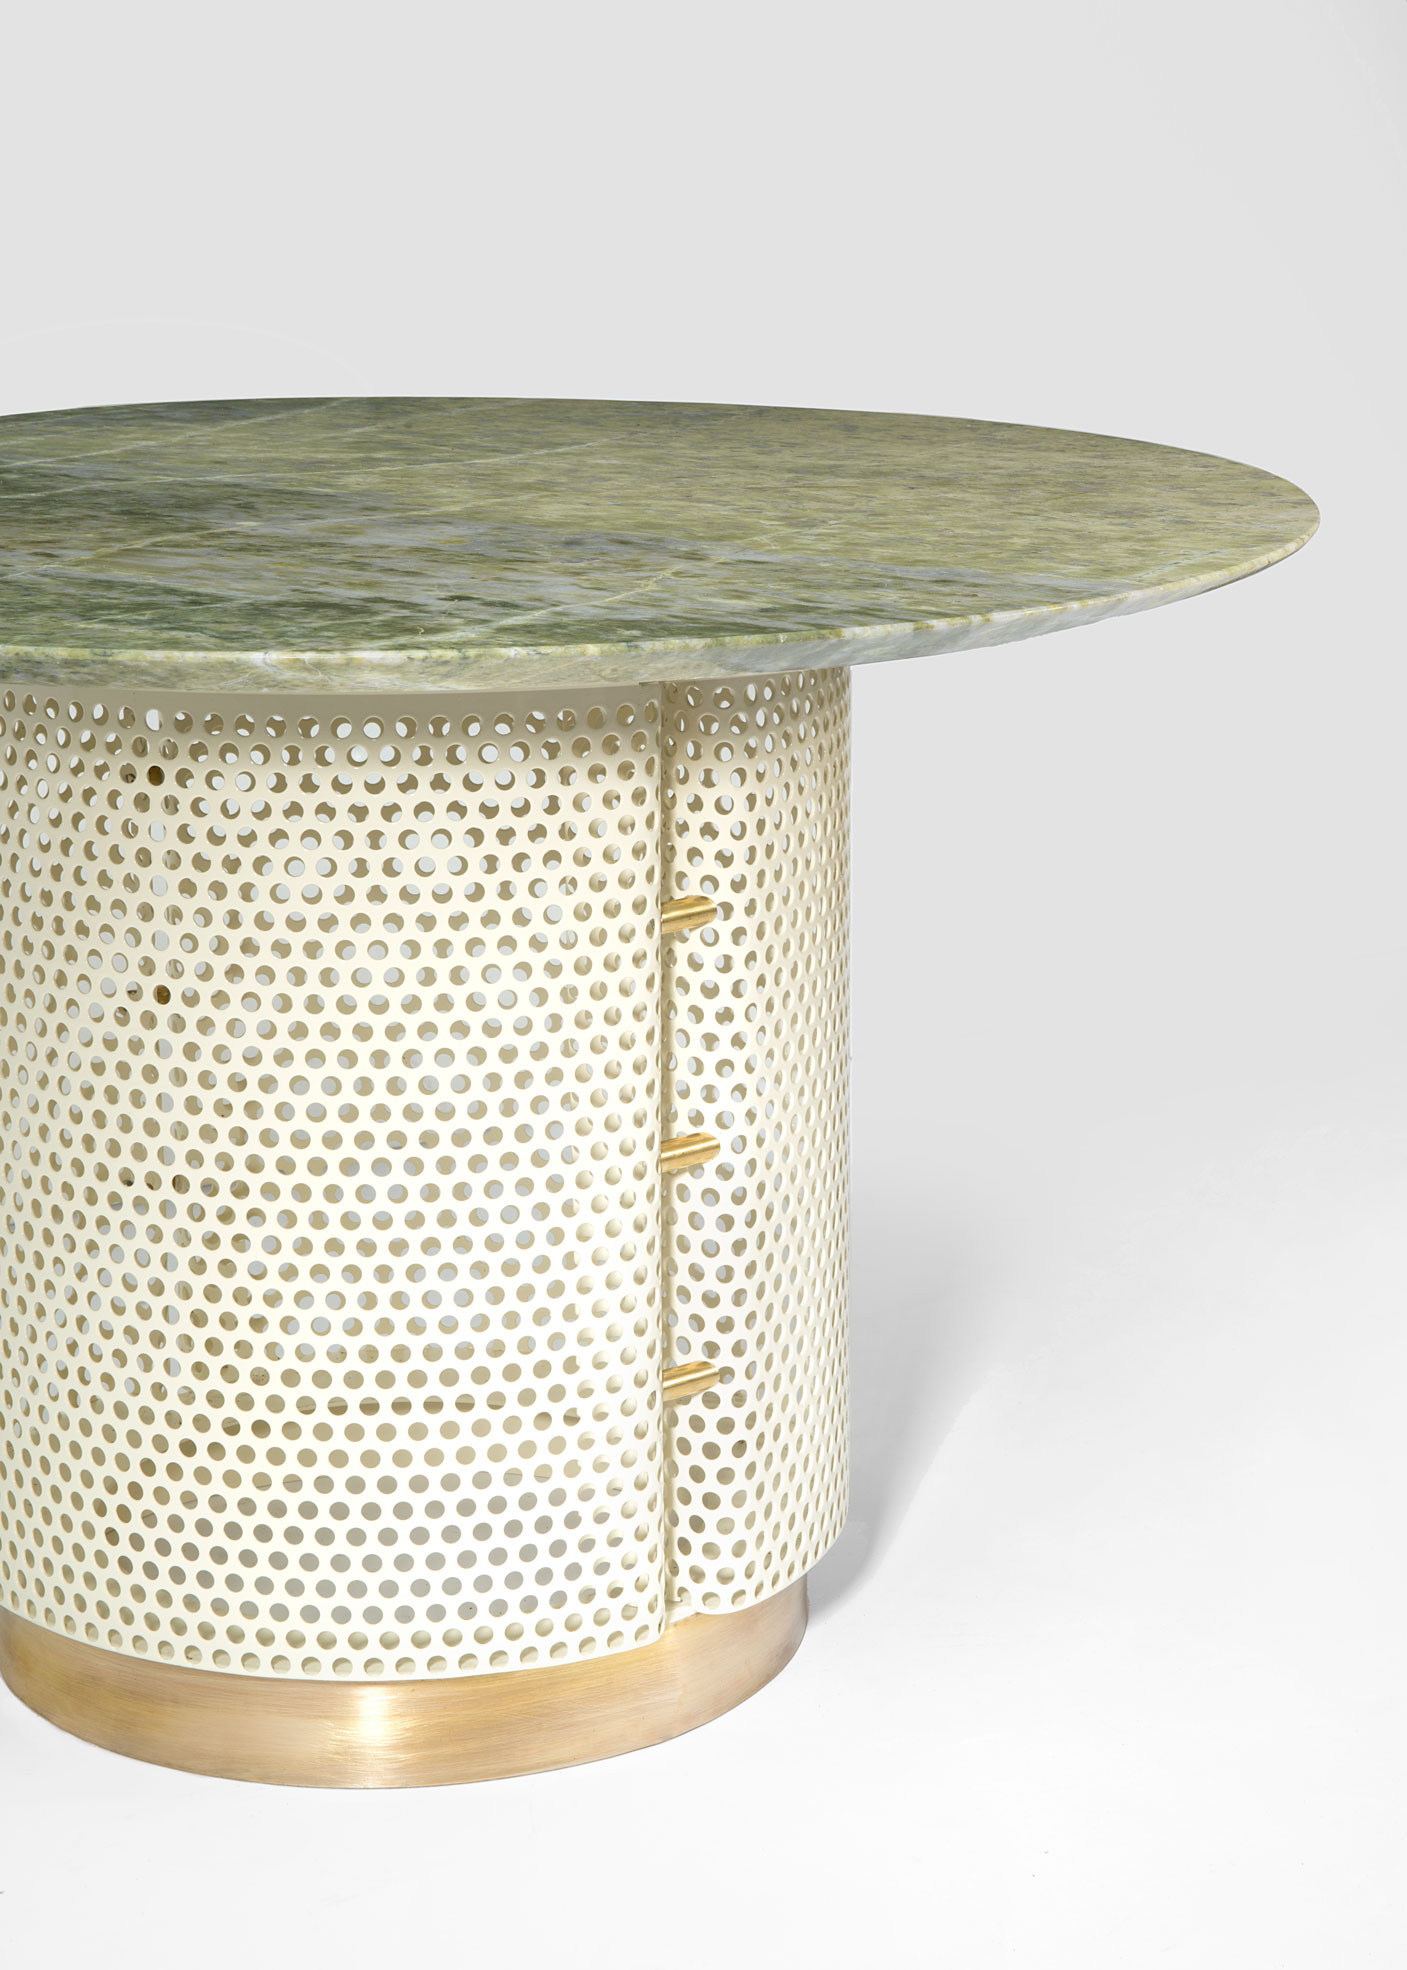 Still life of the Coffee Table of Pois Outdoor Collection Design by Derek Castiglioni Photographer Maria Teresa Furnari